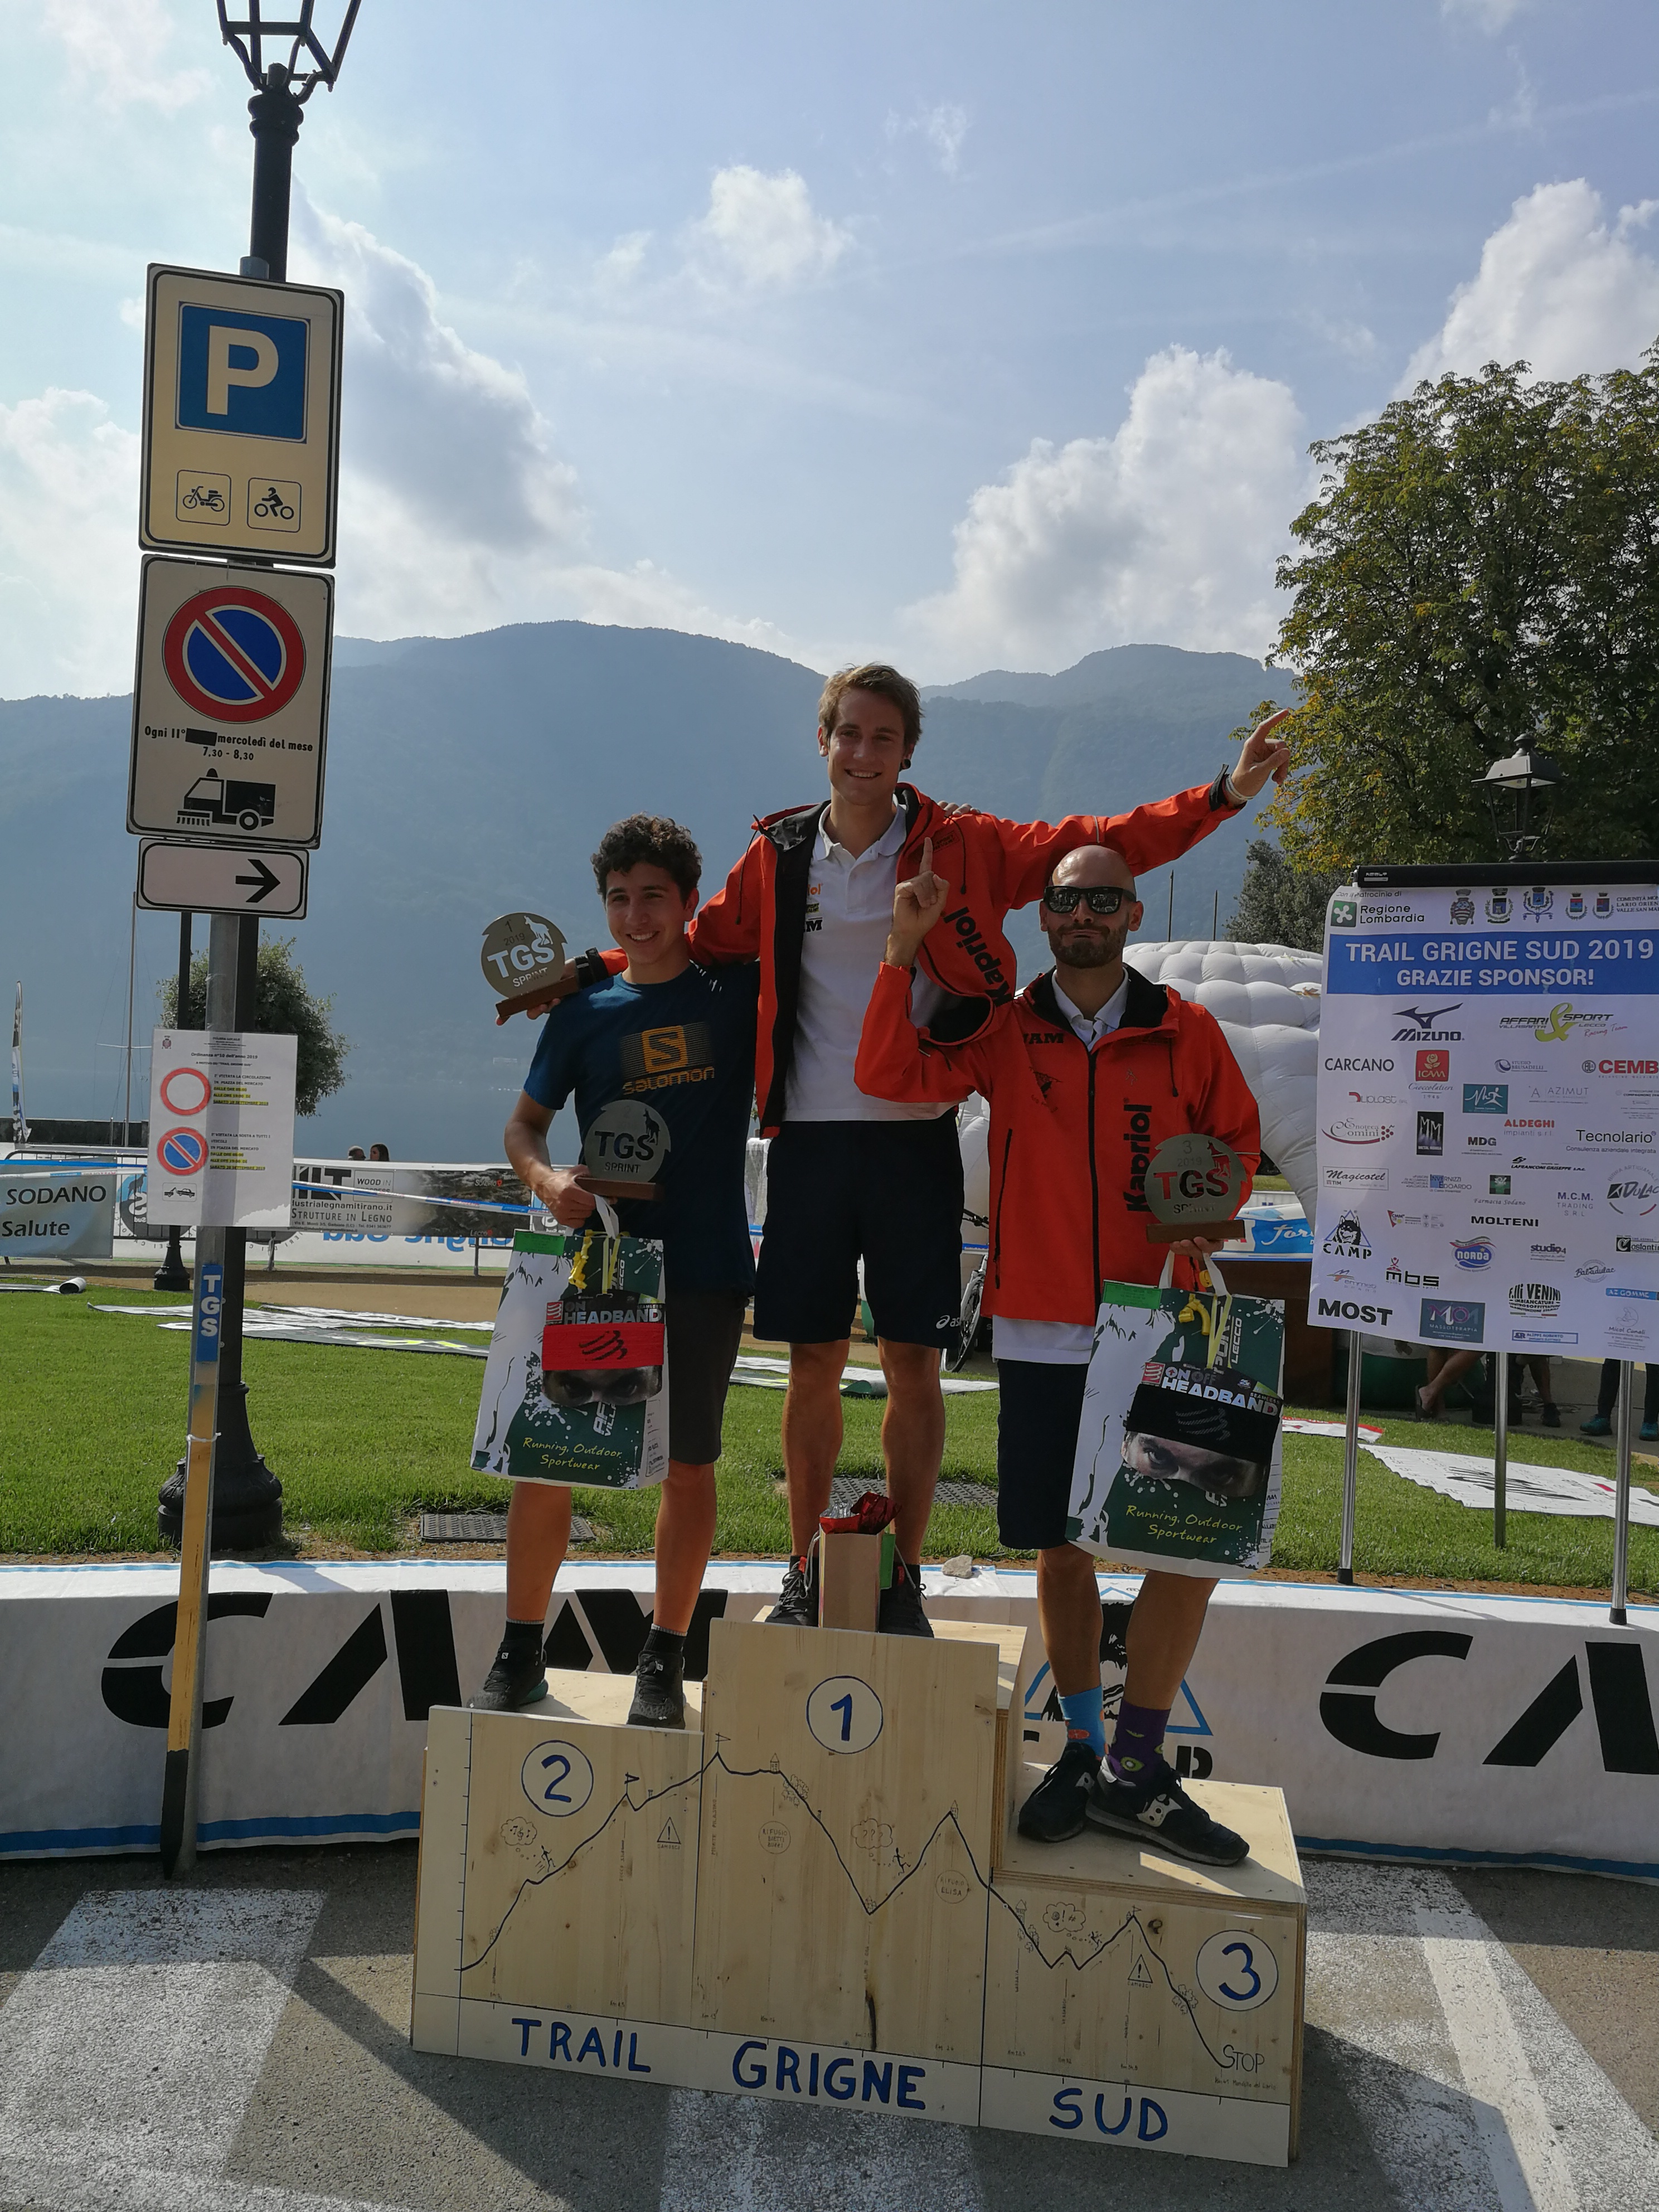 Podio maschile TGS Sprint